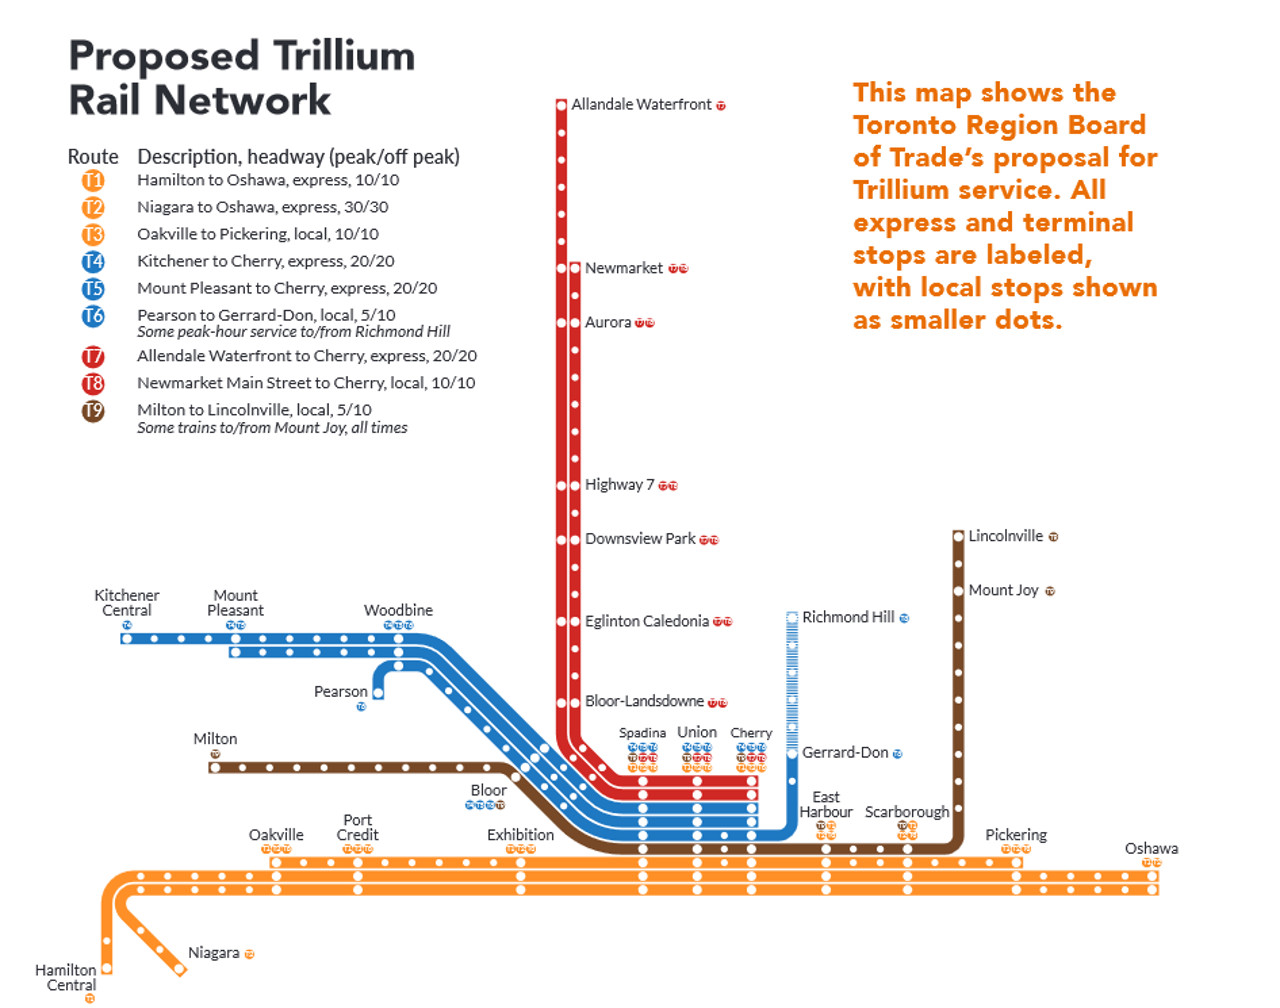 Map of the proposed Trillium Network and its service plan